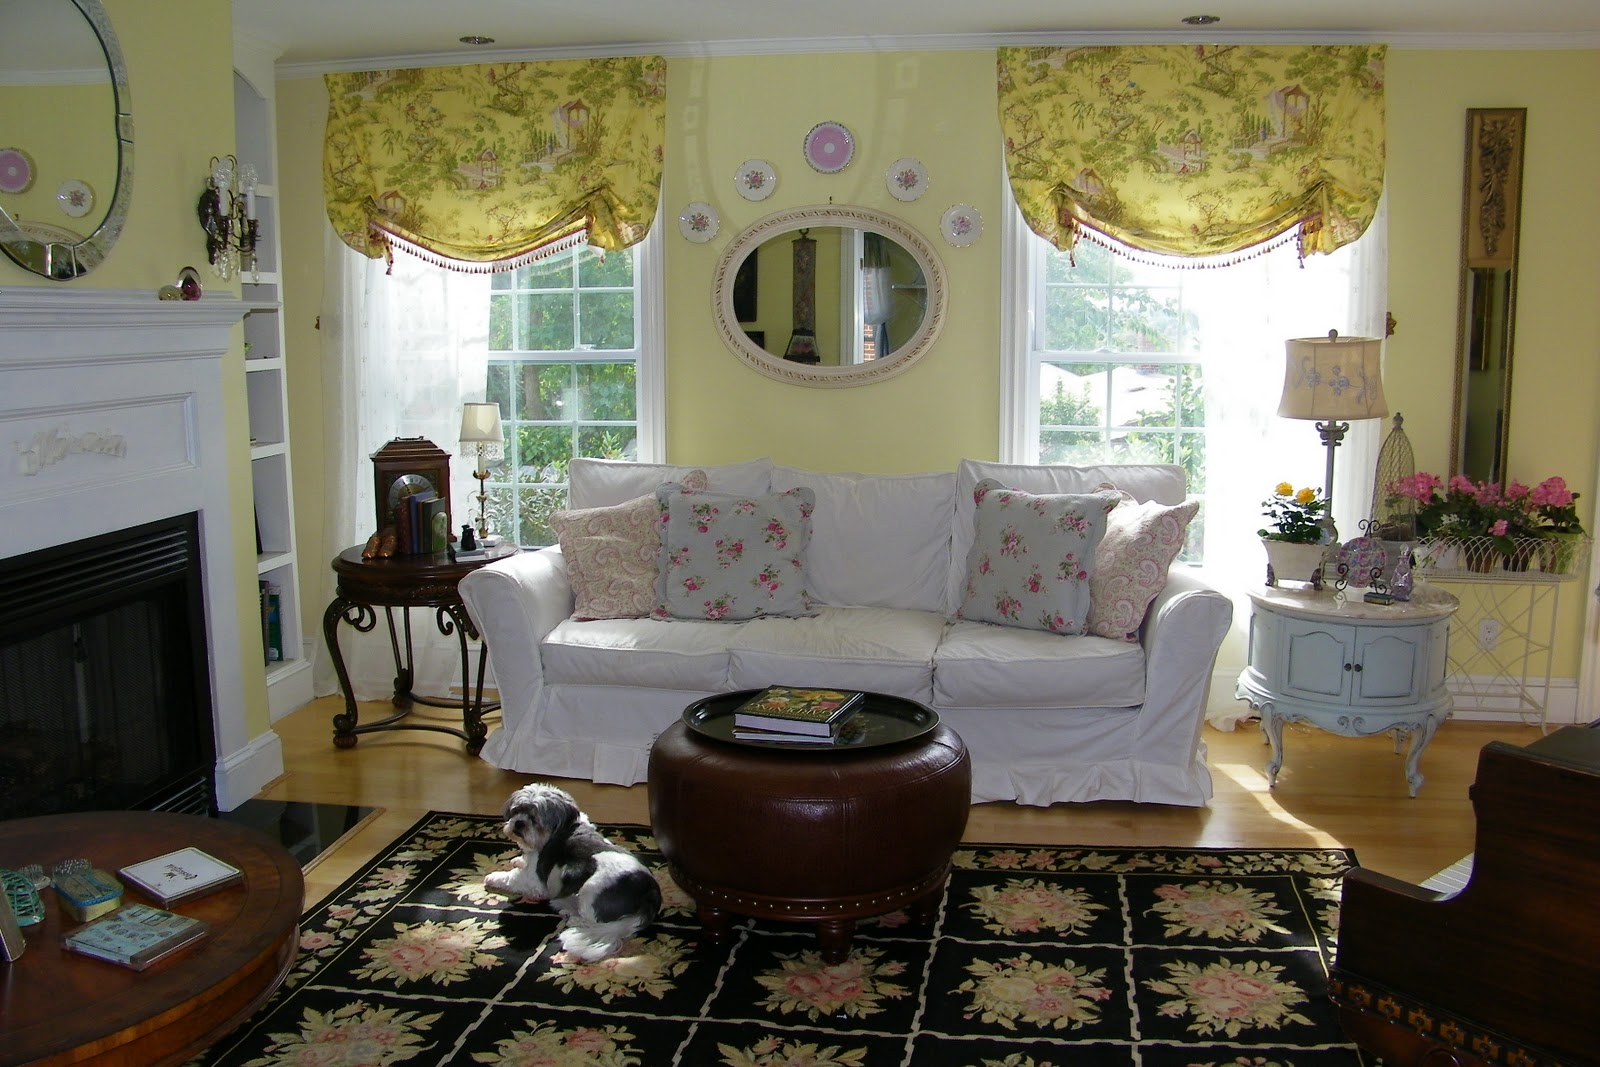 Maison decor french country enchanting yellow white - Living room ideas french country ...